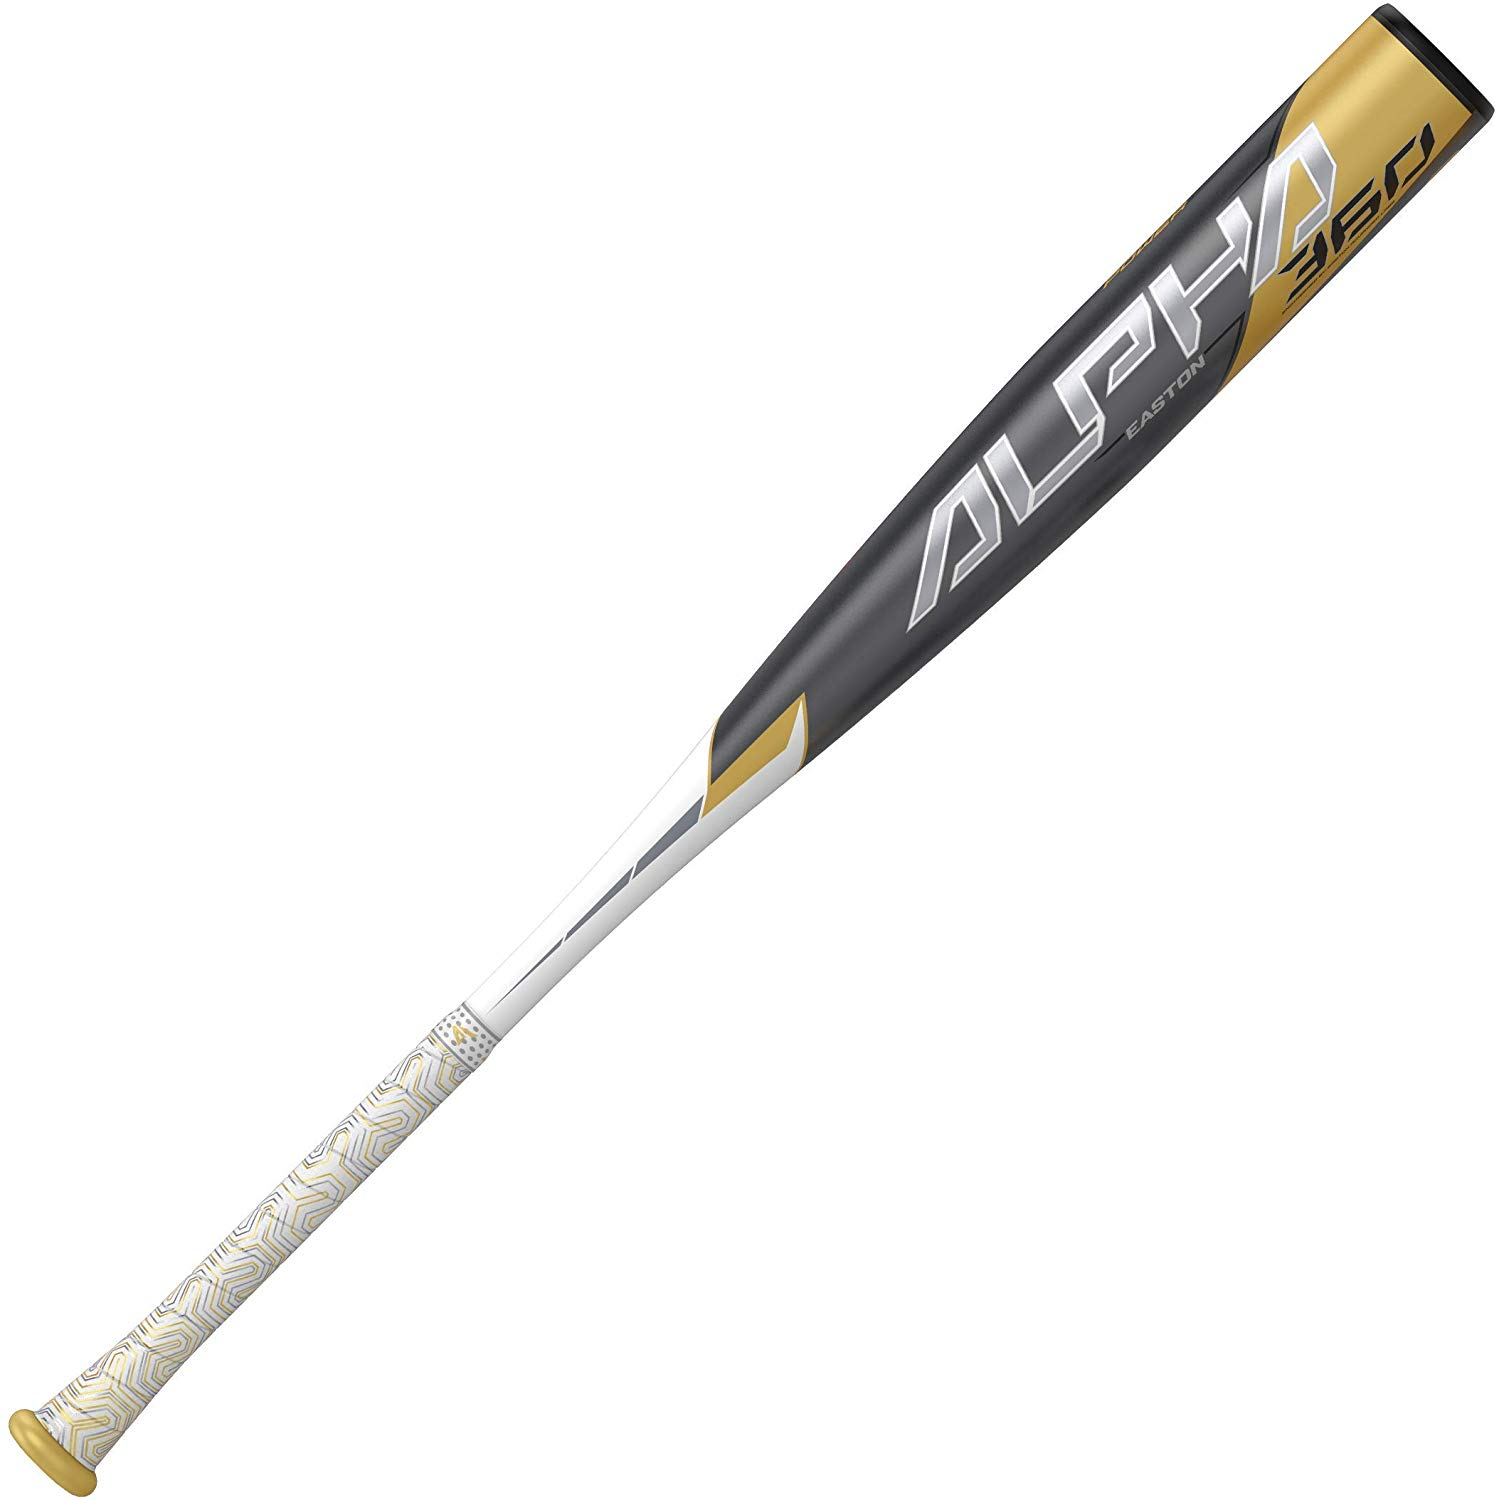 easton-alpha-360-3-bbcor-baseball-bat-32-inch-29-oz BB20AL-3229 Easton 628412266618 1-piece ATAC Alloy - Advanced Thermal Alloy Construction reinforced with Carbon-Core